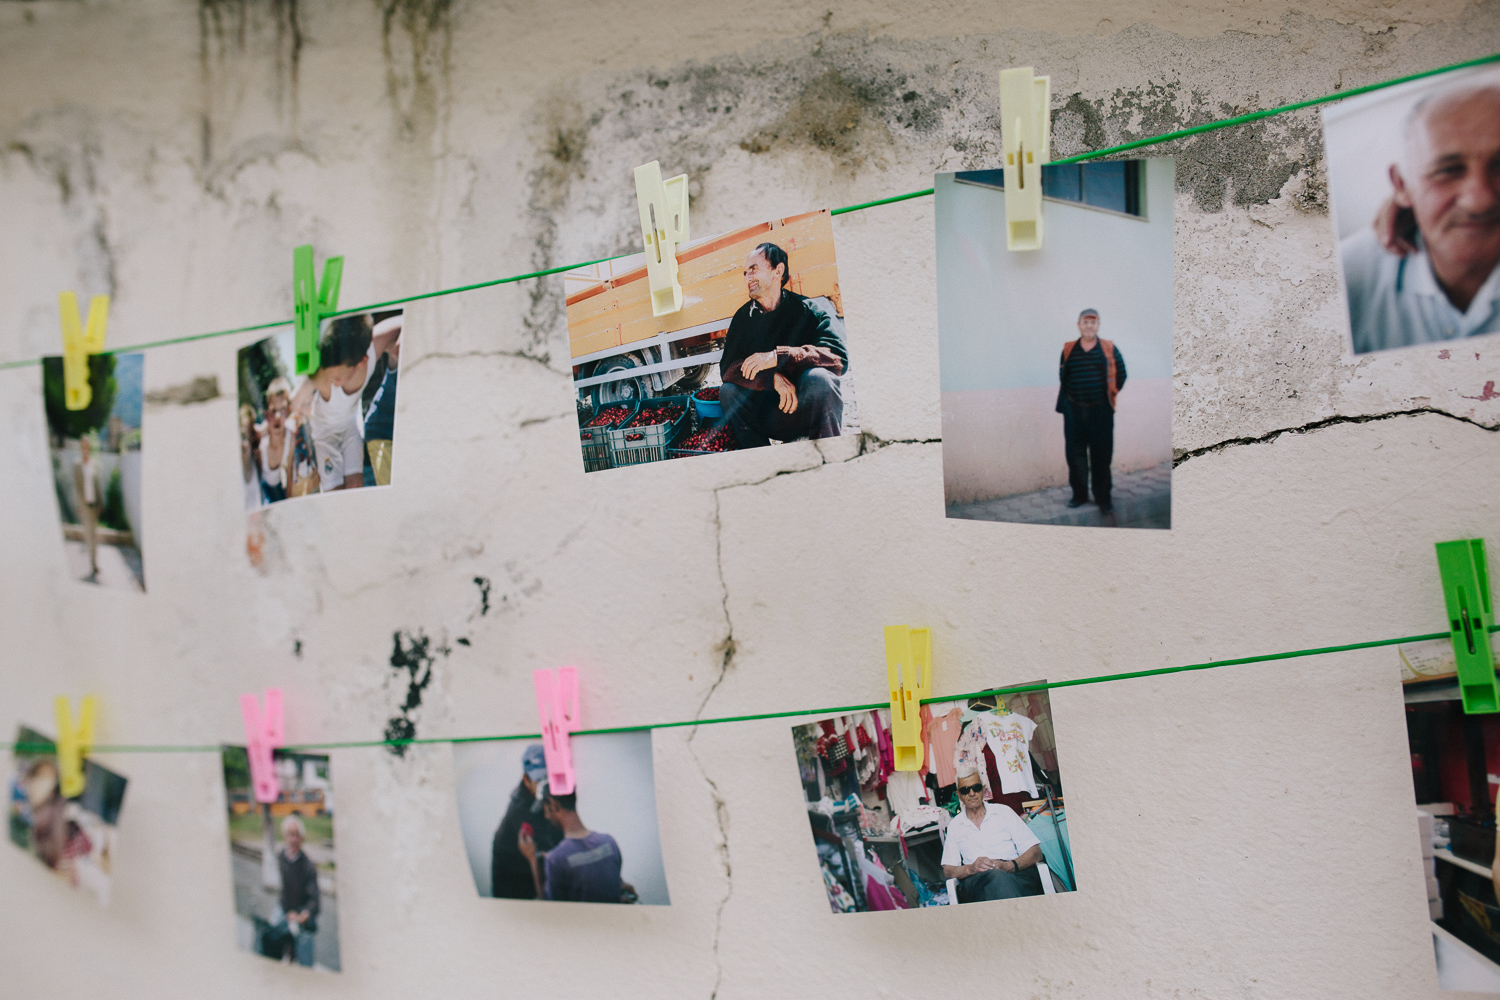 Street-exhibition-Albania-Atte-Tanner-Photography-2.jpg